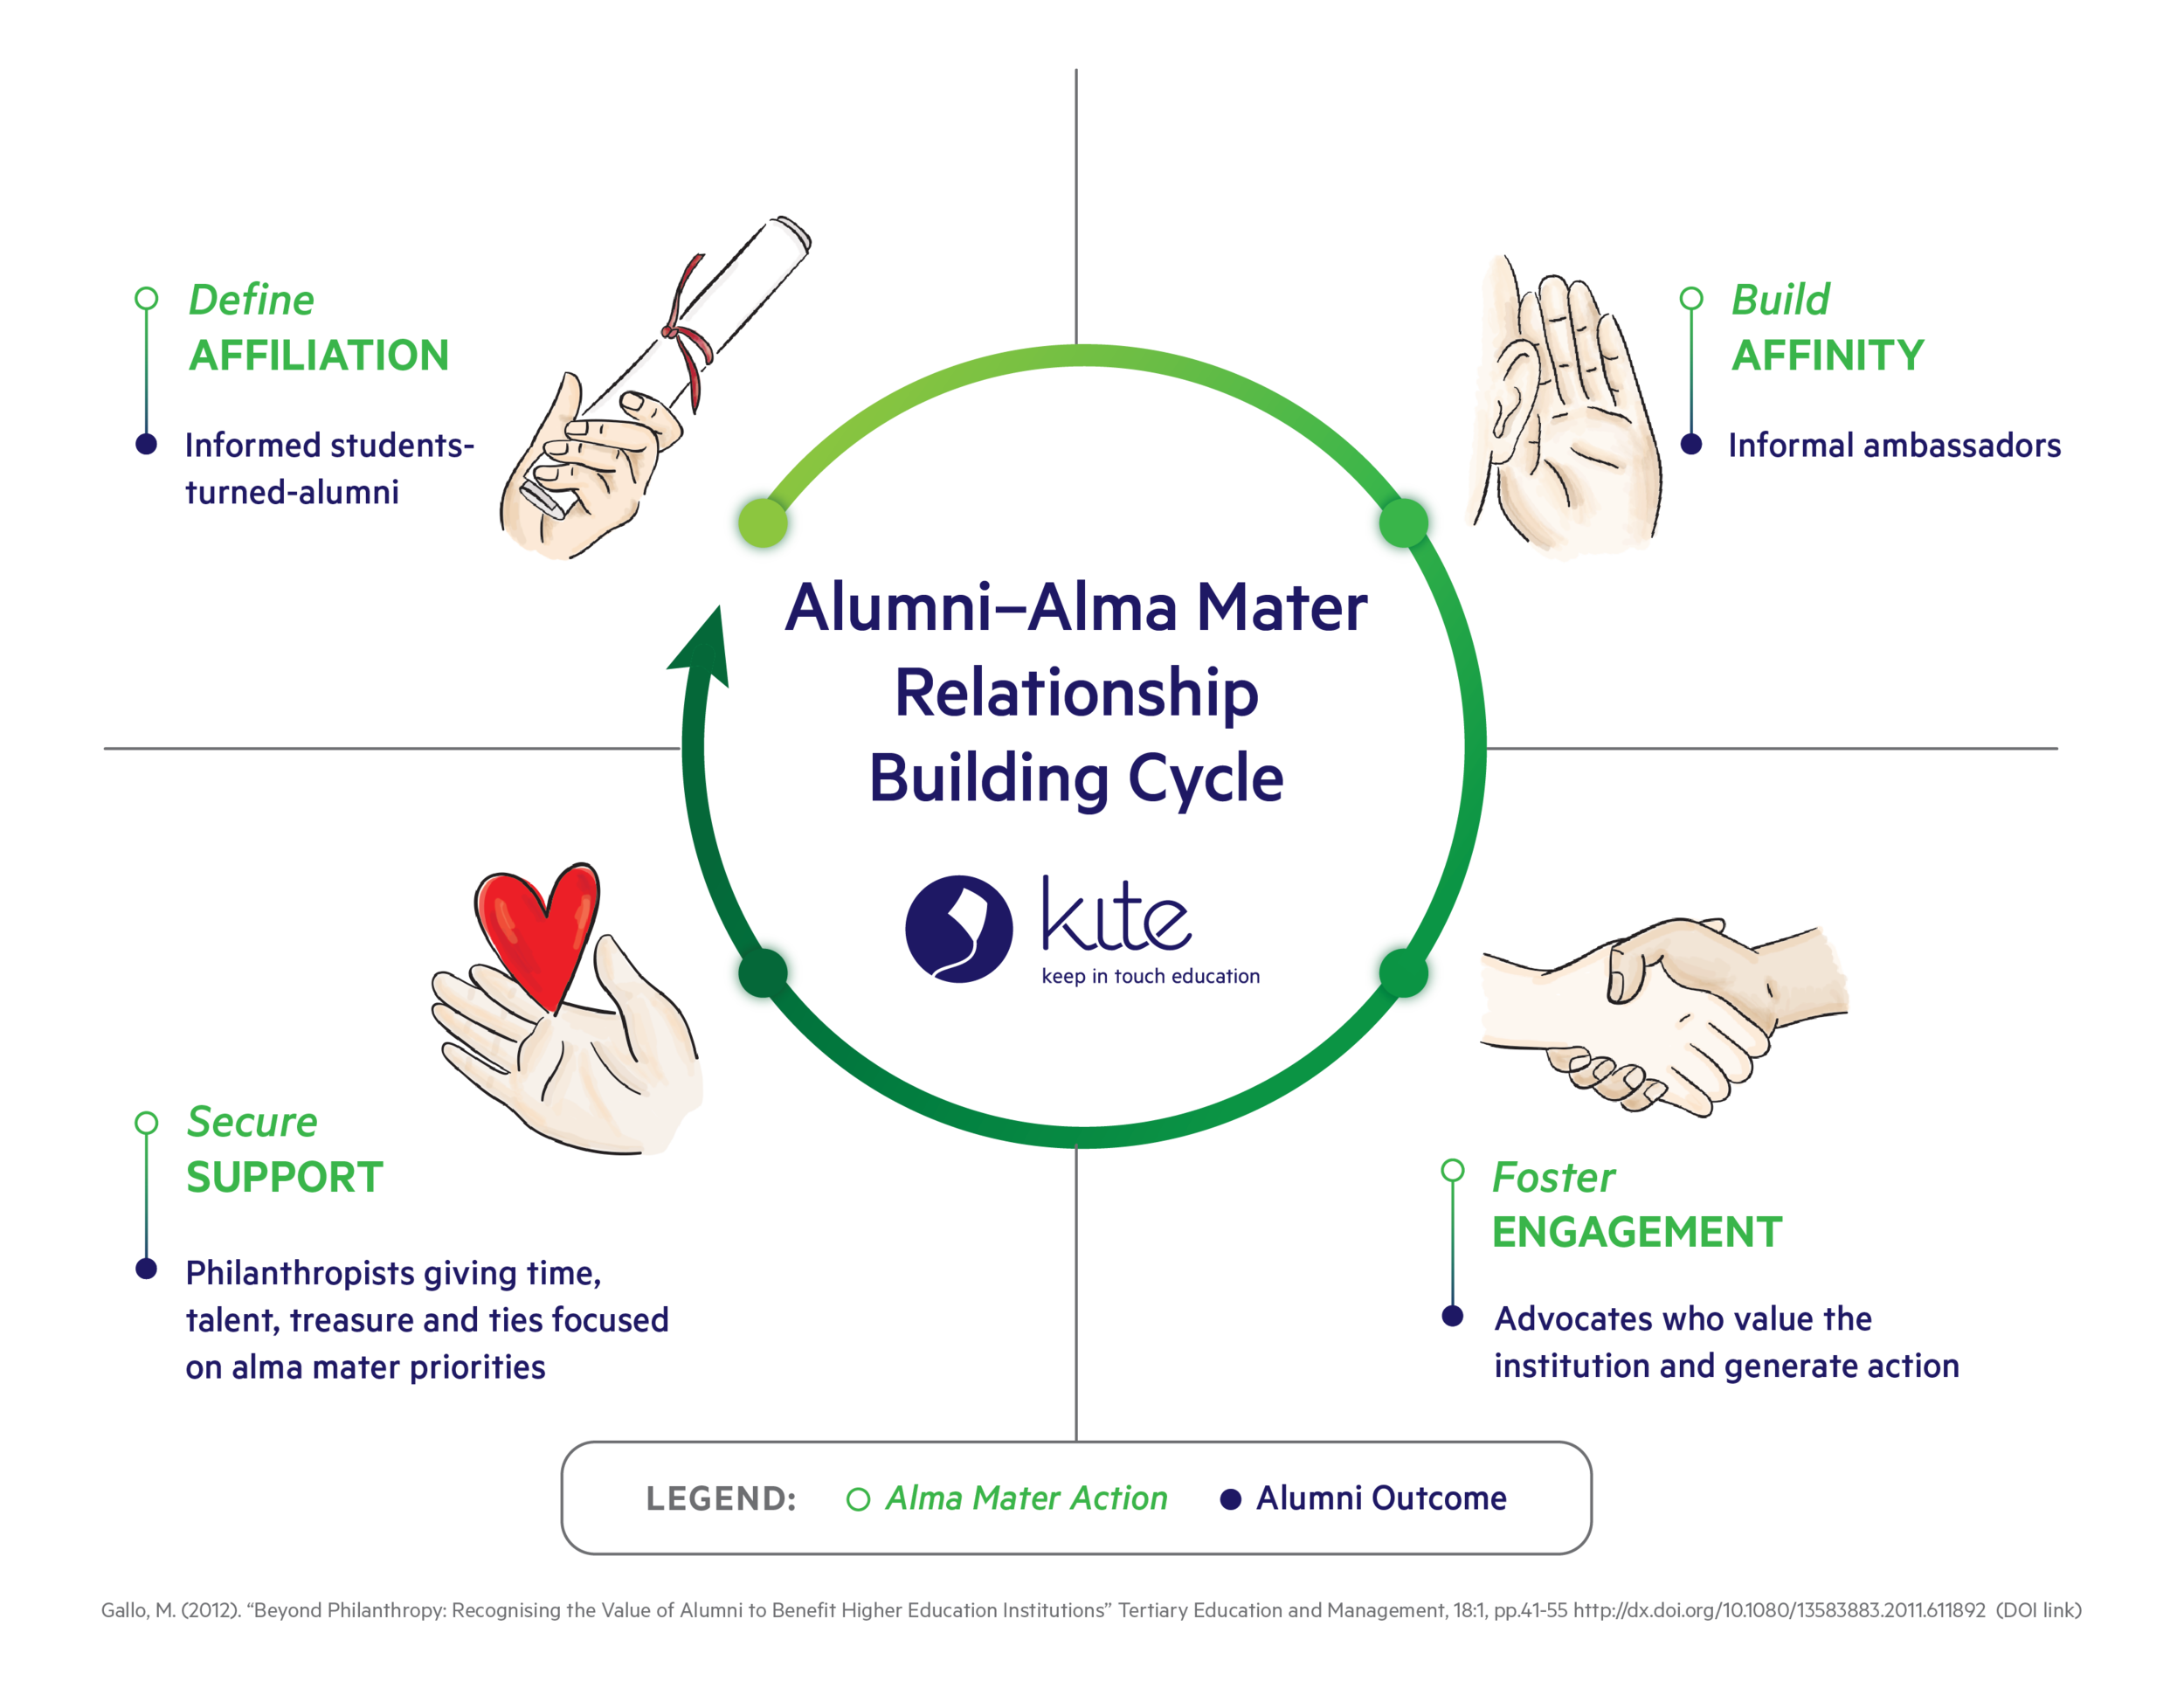 Alumni-Alma Mater Relationship Building Cycle - From the Tertiary Education and Management Journal article here